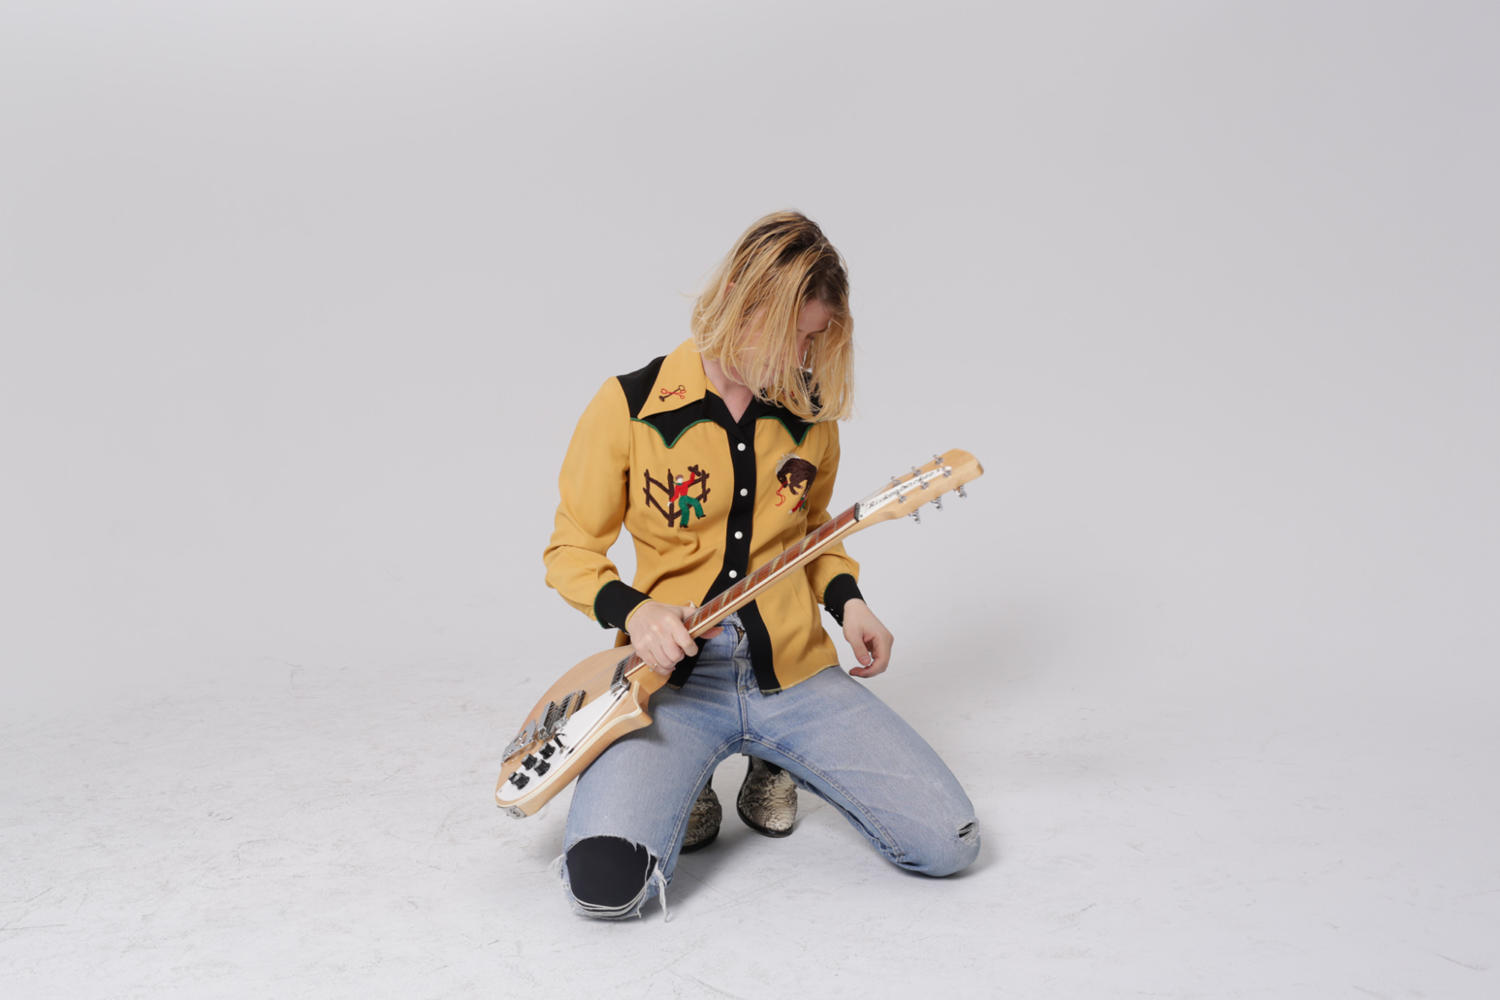 Christopher Owens has formed a band called Curls